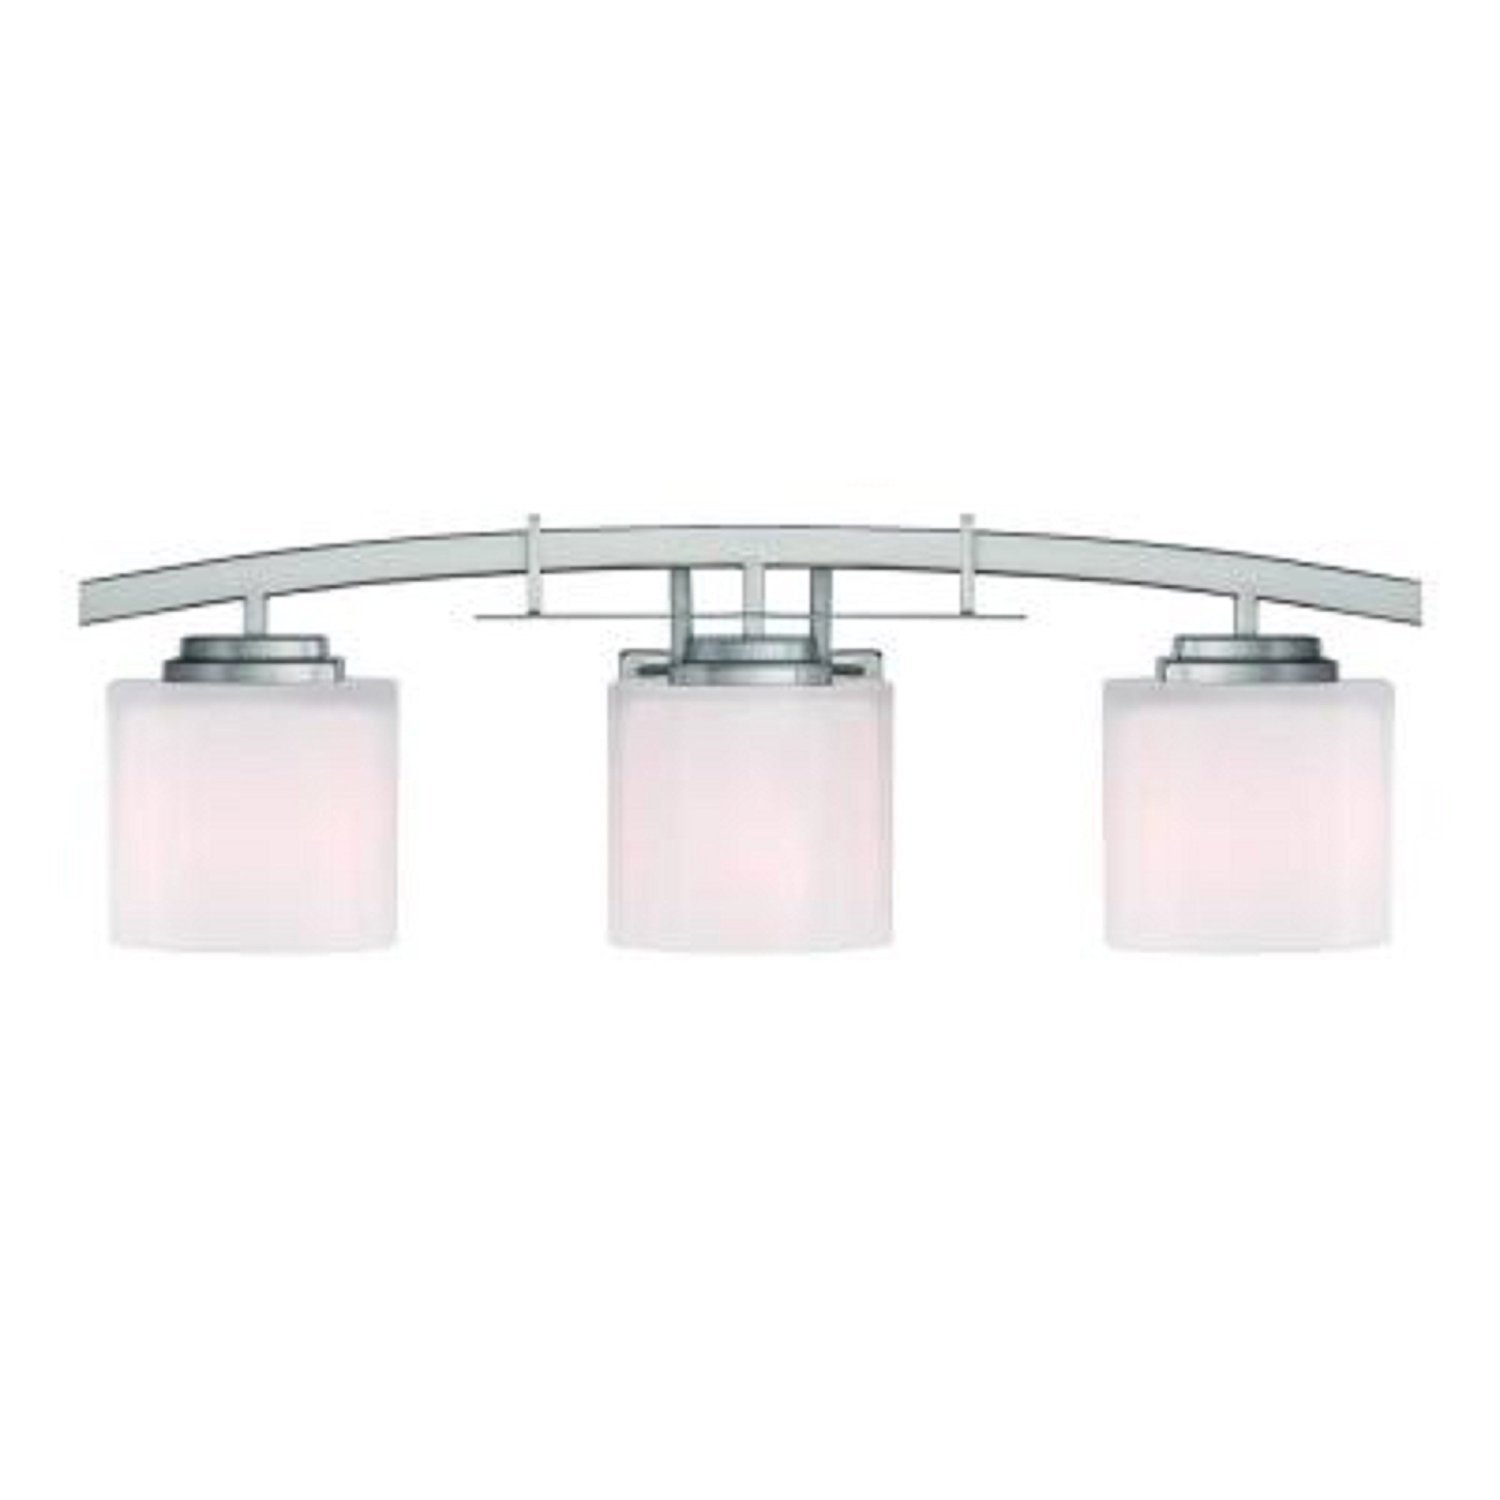 Hampton Bay 15041 Architecture 3 Light Brushed Nickel Vanity Com Industrial Scientific